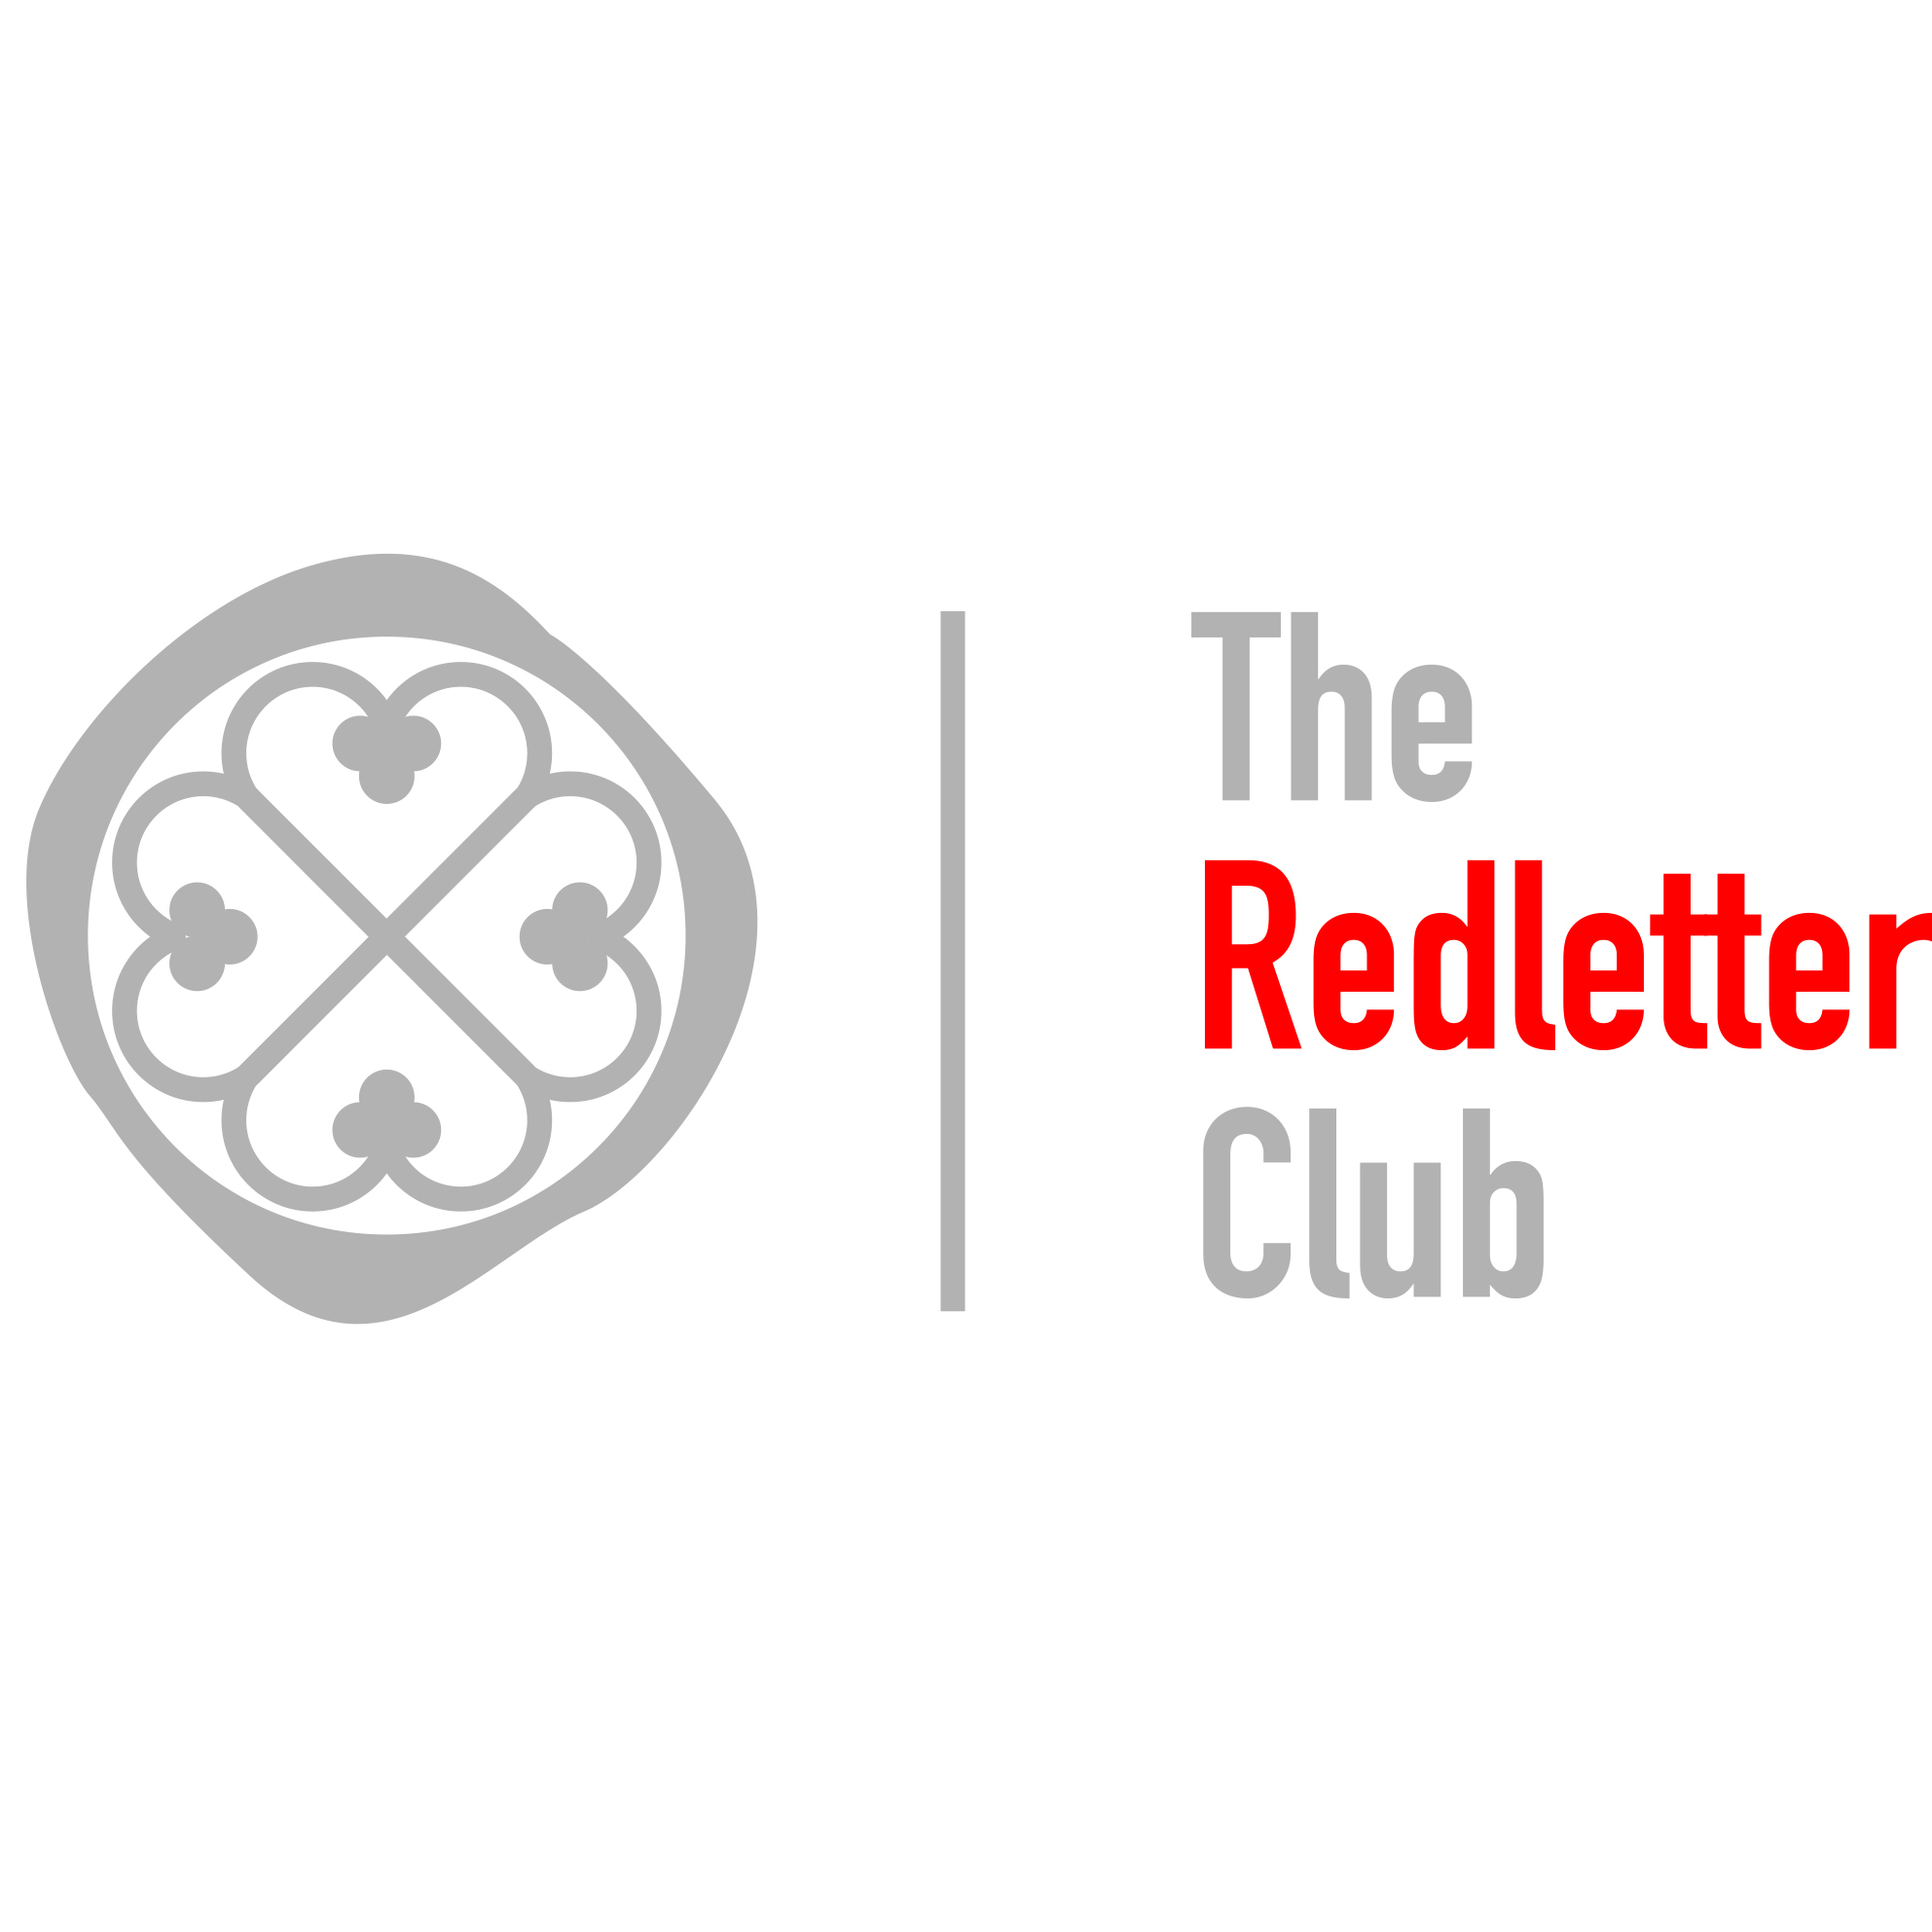 Red Letter Club